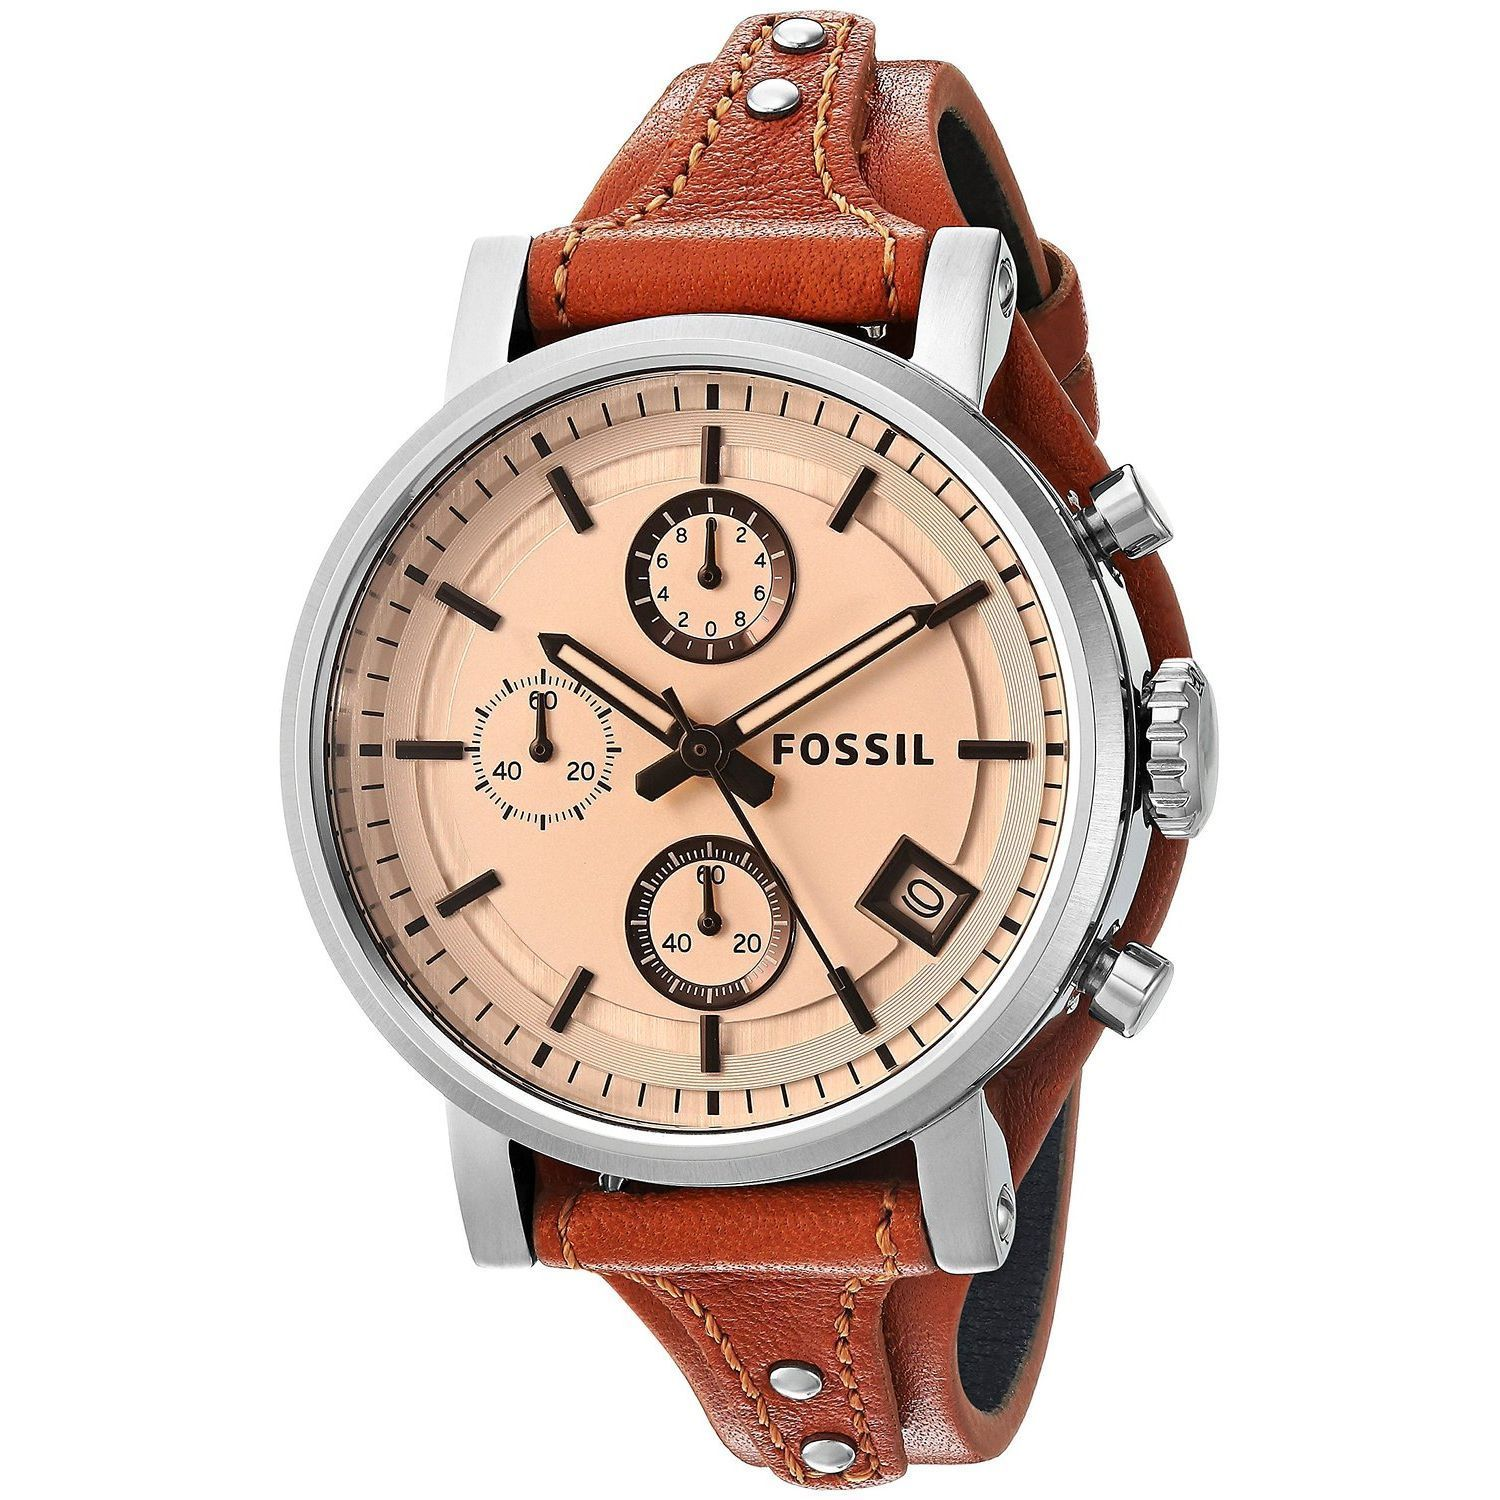 b0eeafe26 Shop Fossil Women's ES4046 'Original Boyfriend' Chronograph Brown Leather  Watch - Free Shipping Today - Overstock - 12450769